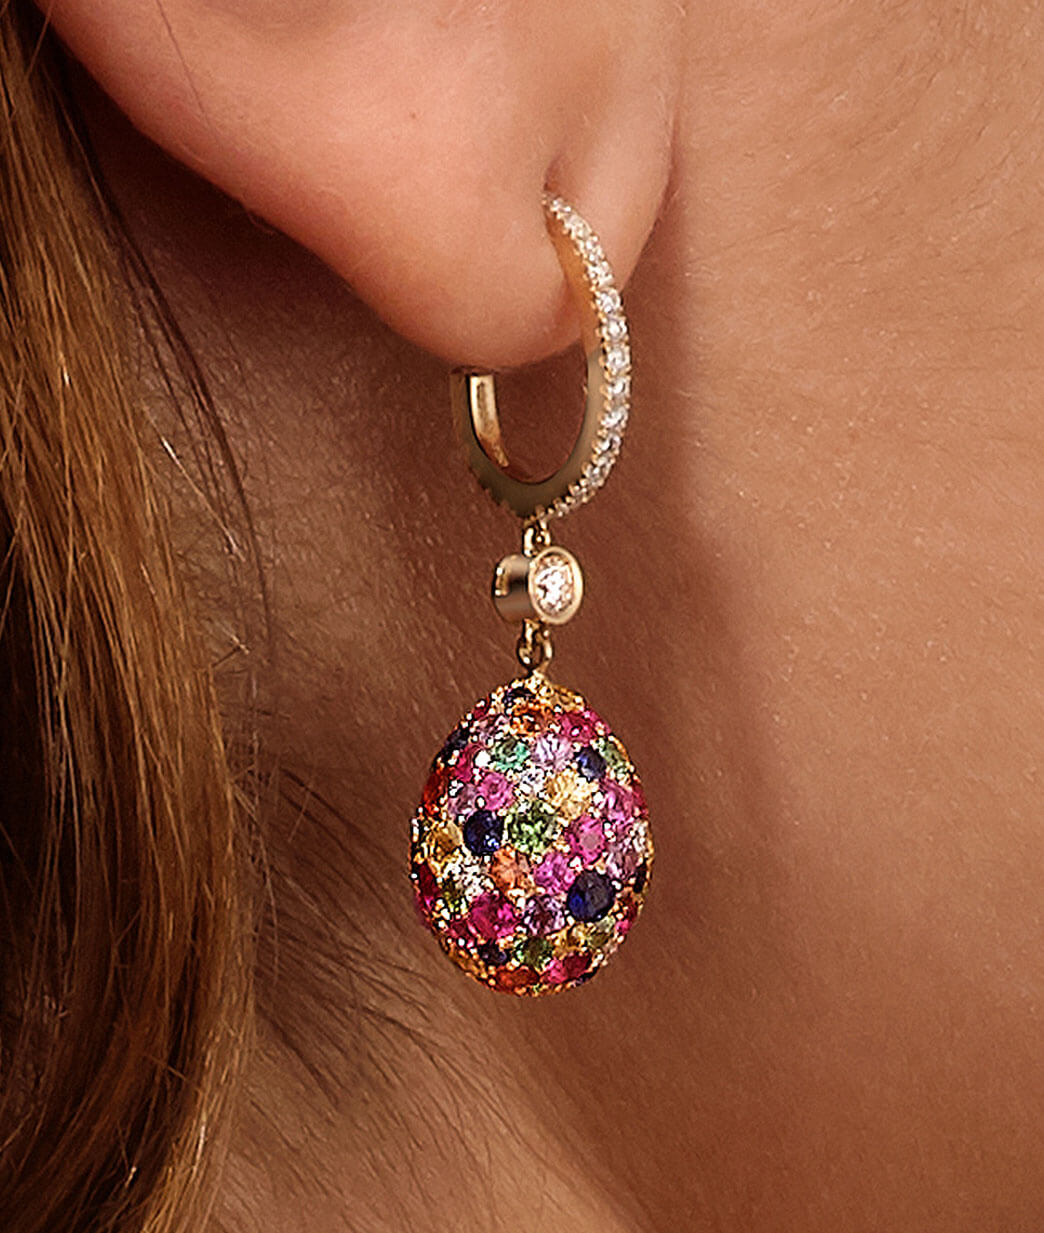 Close up view of two Fabergé egg pendant earrings